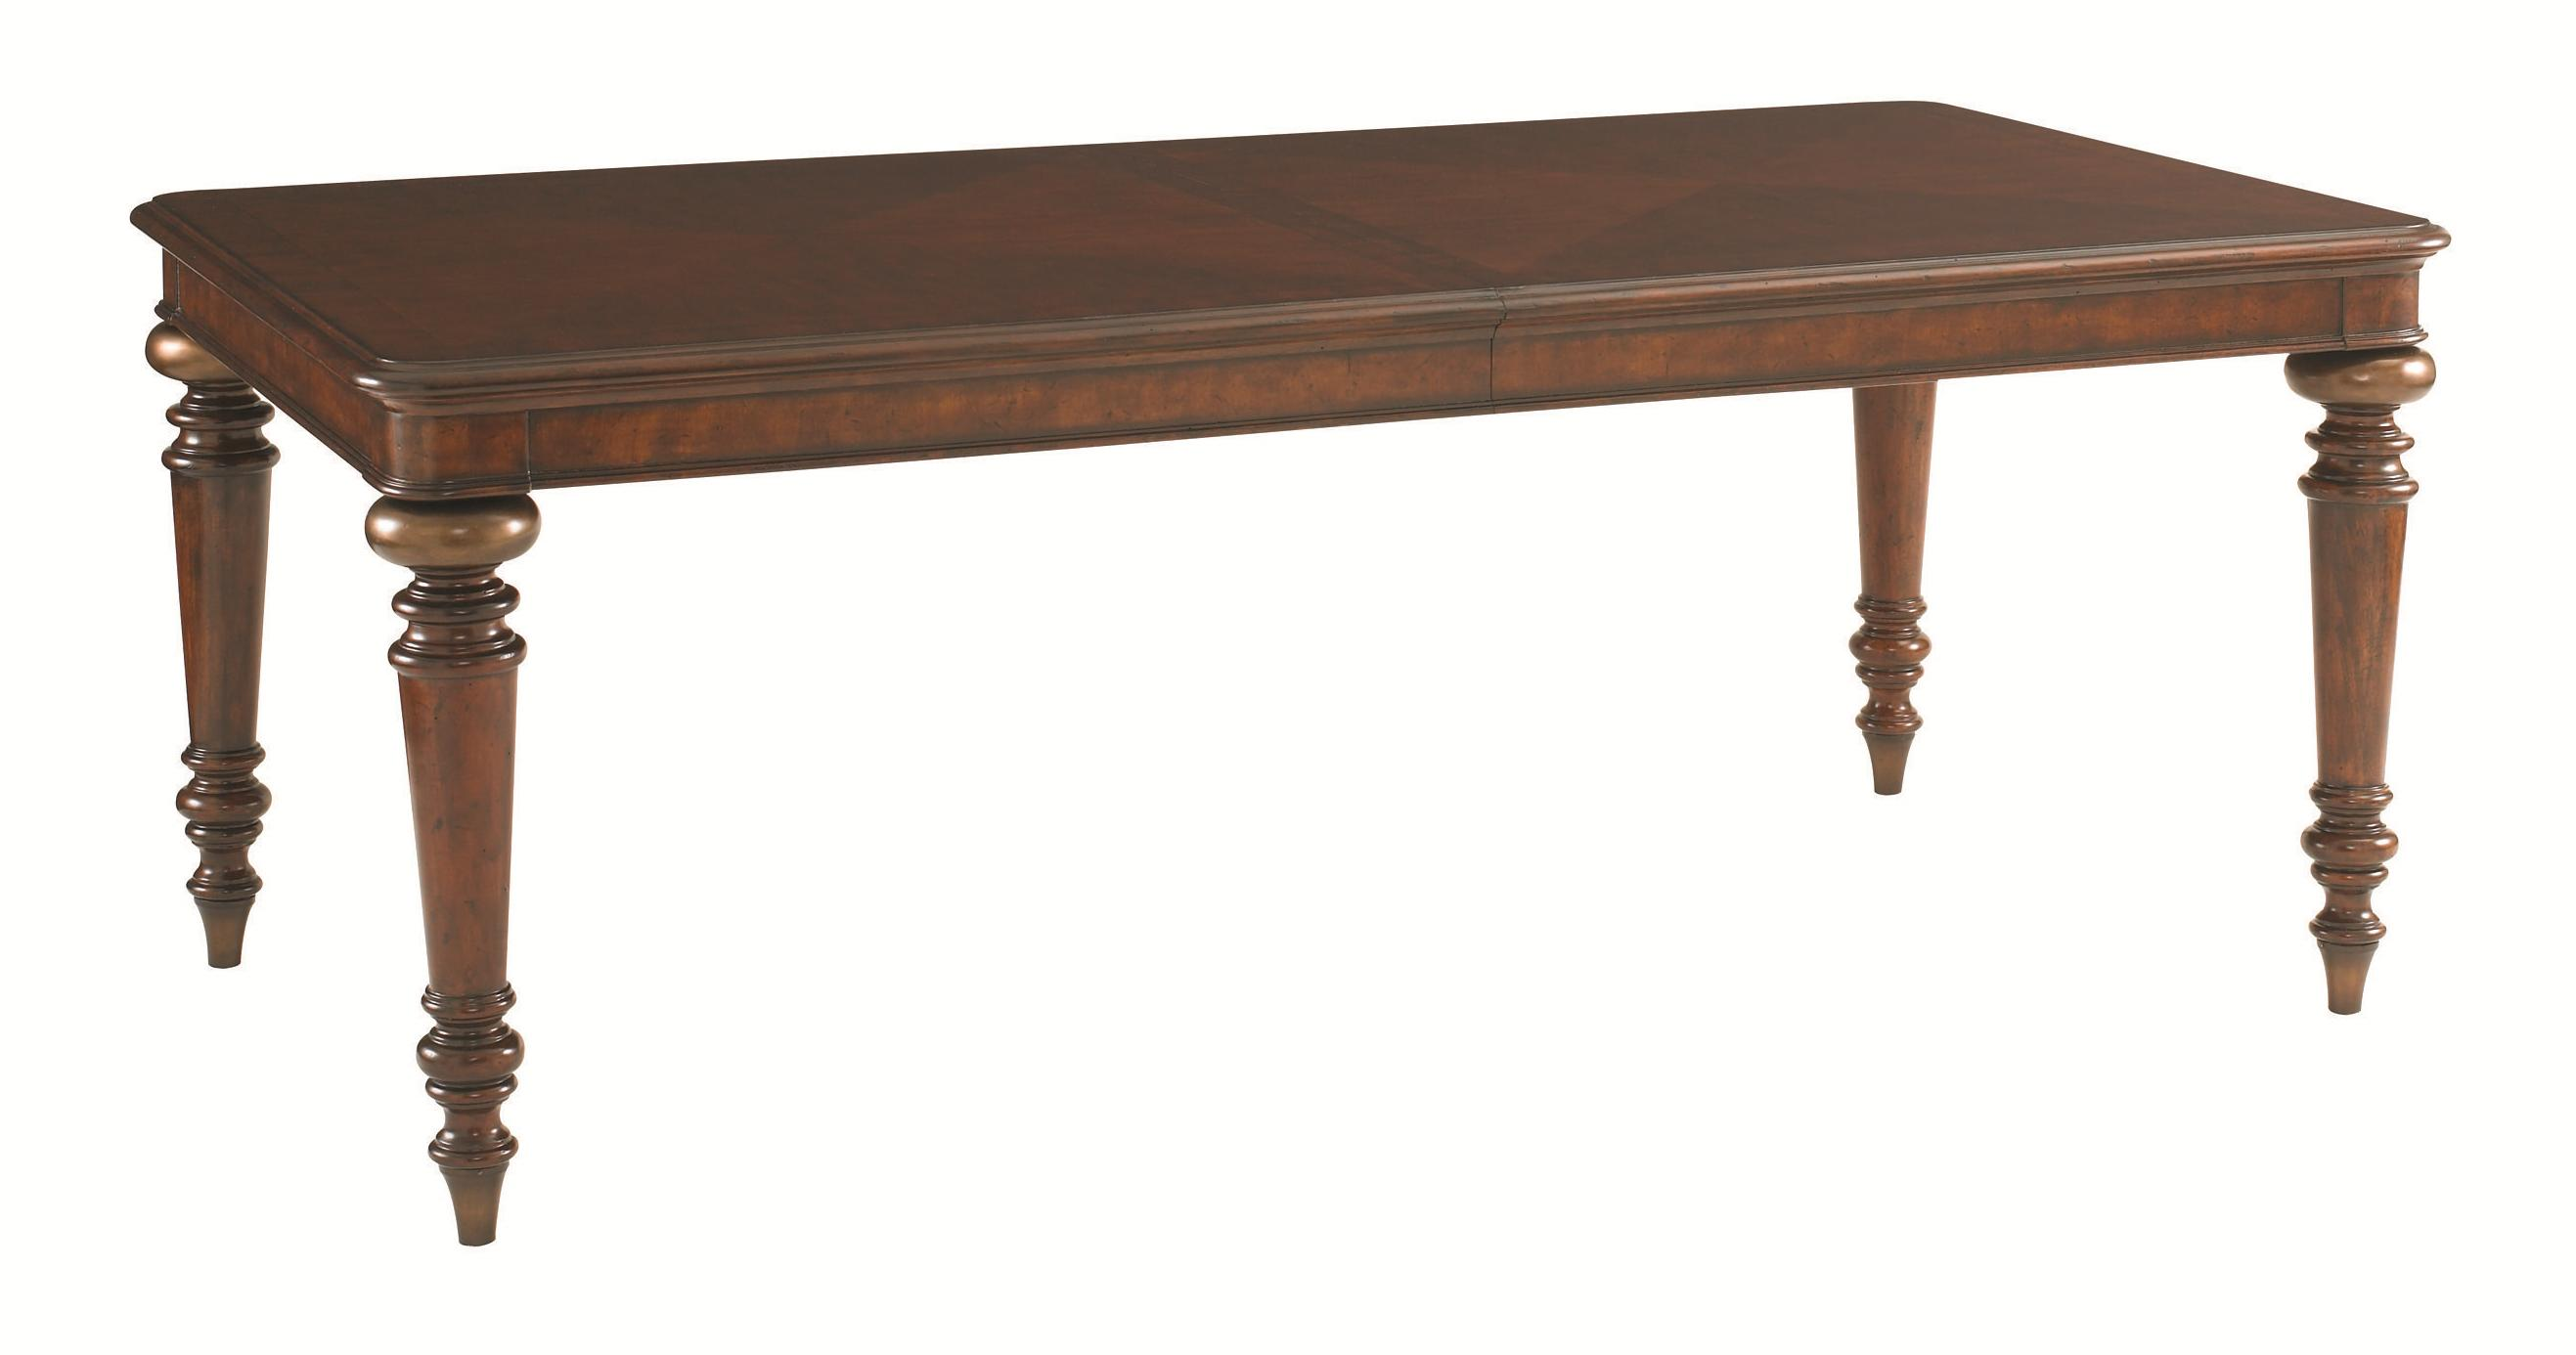 Tommy Bahama Home Landara Pelican Hill Rectangular Dining Table - Item Number: 545-877